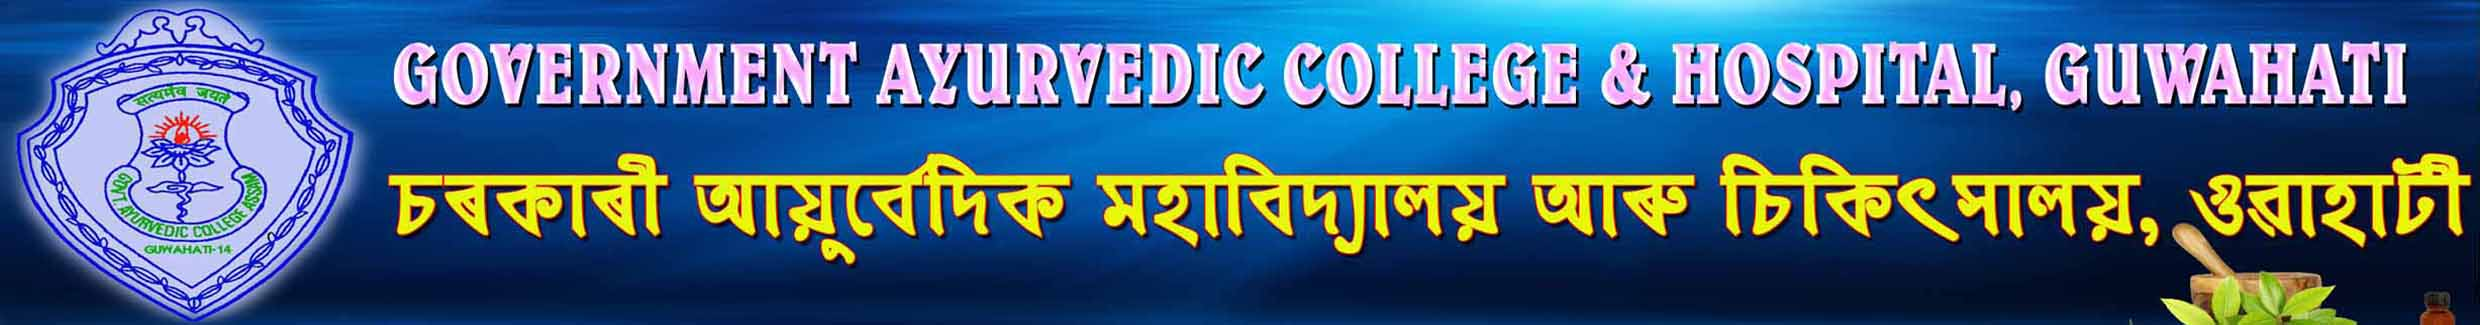 Government Ayurvedic College & Hospital, Guwahati